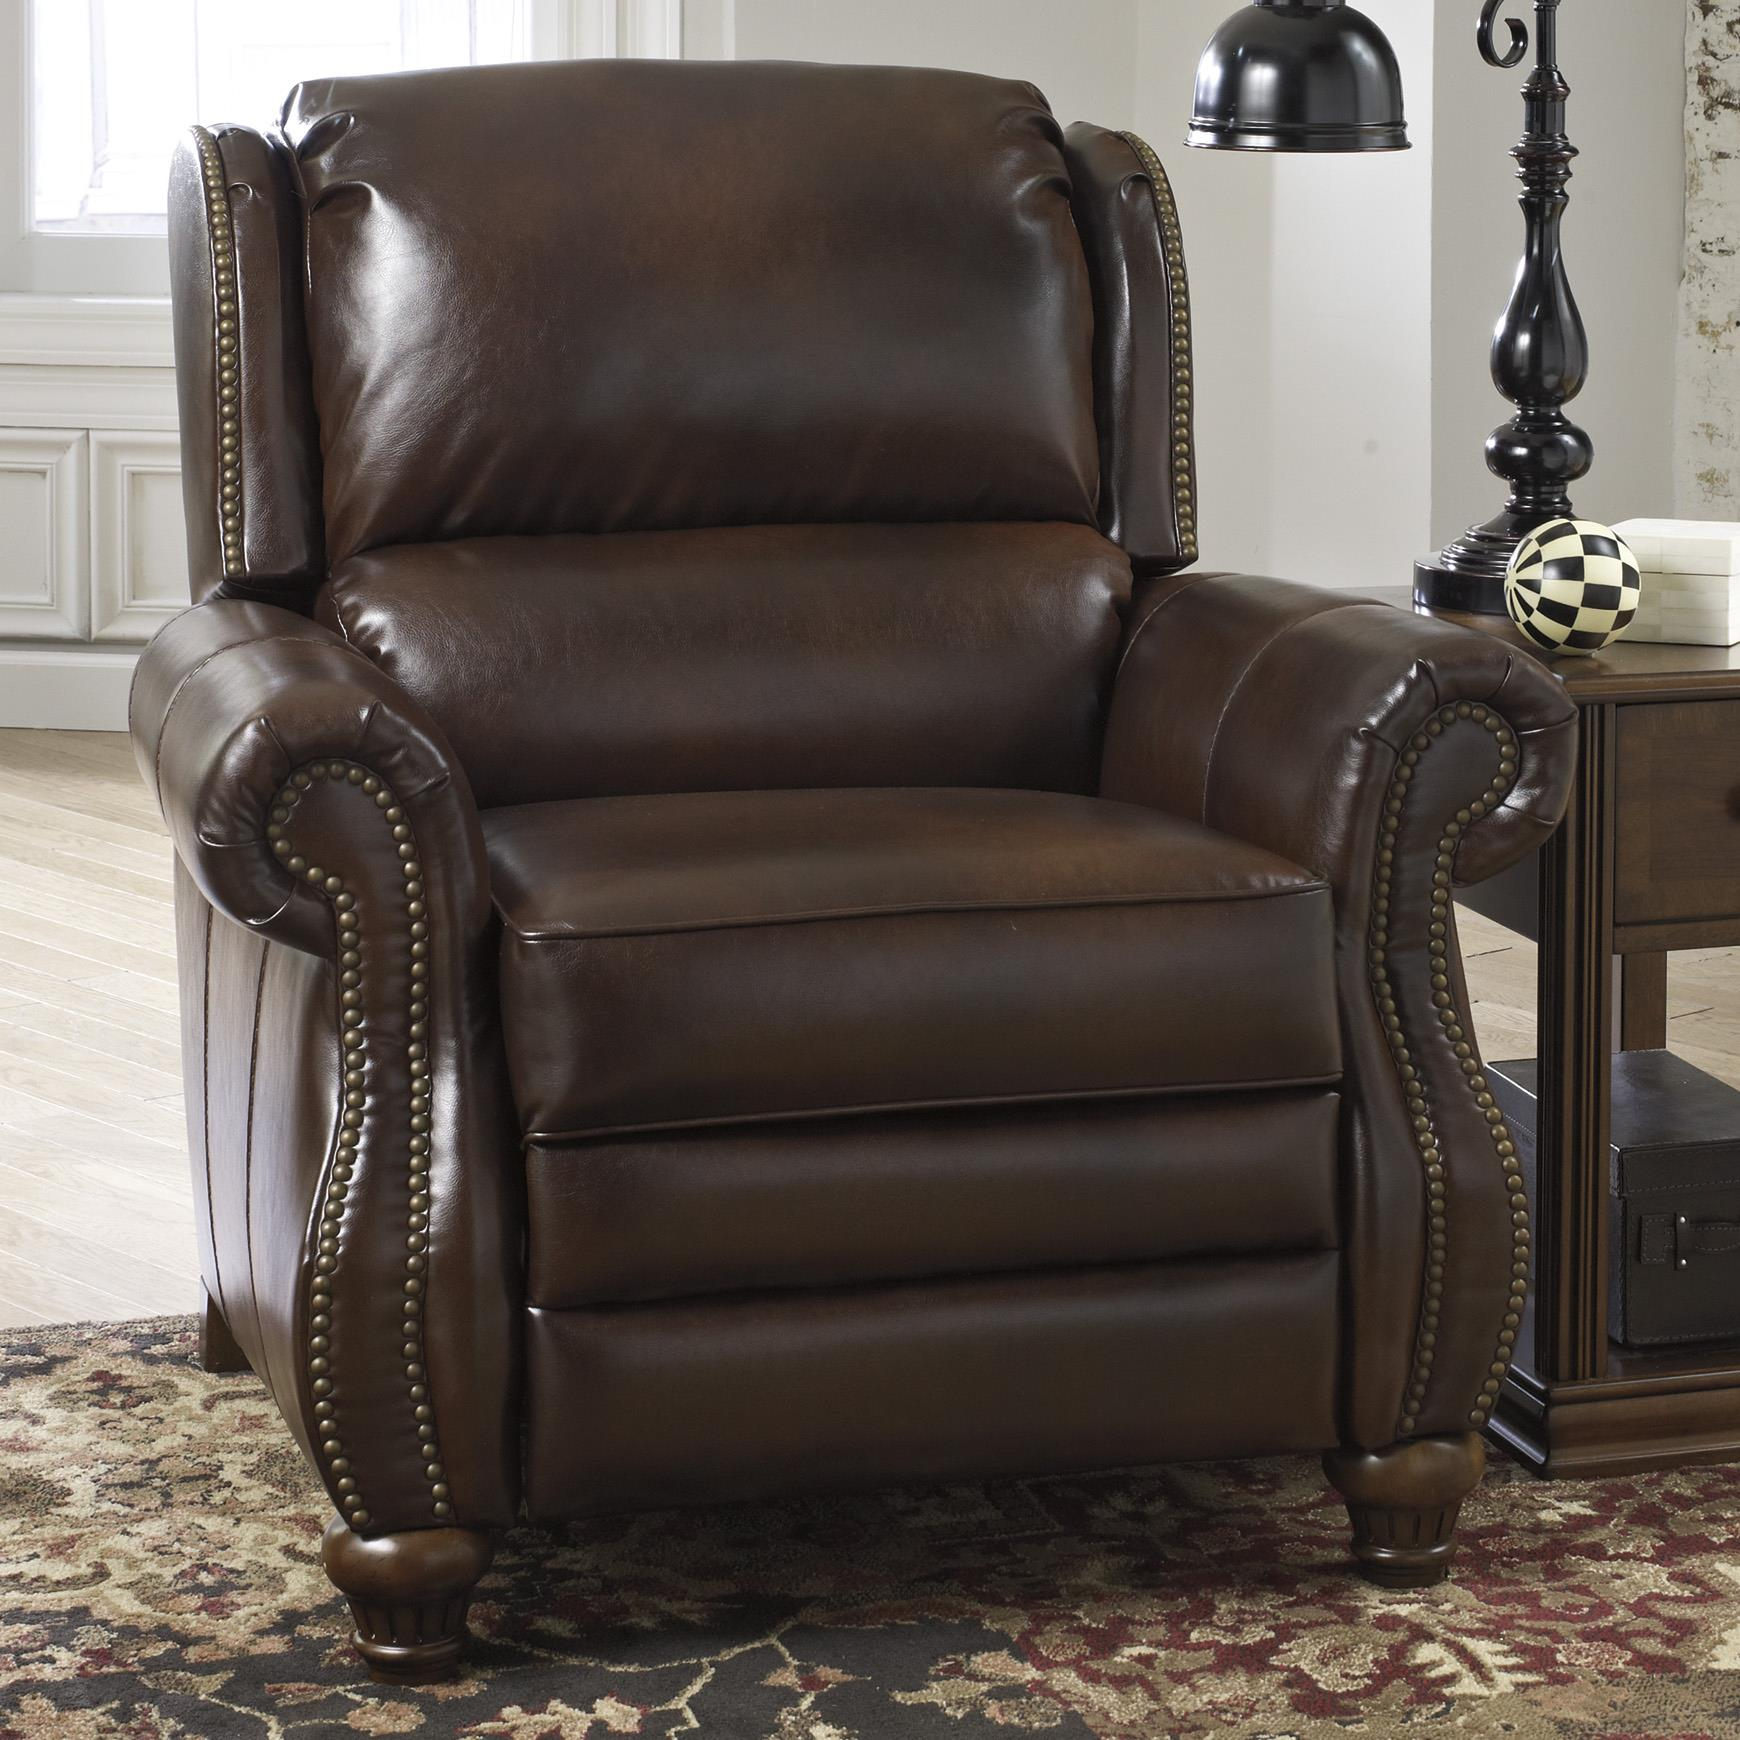 Signature Design by Ashley Elberton DuraBlend® Low Leg Recliner - Item Number: 2060030